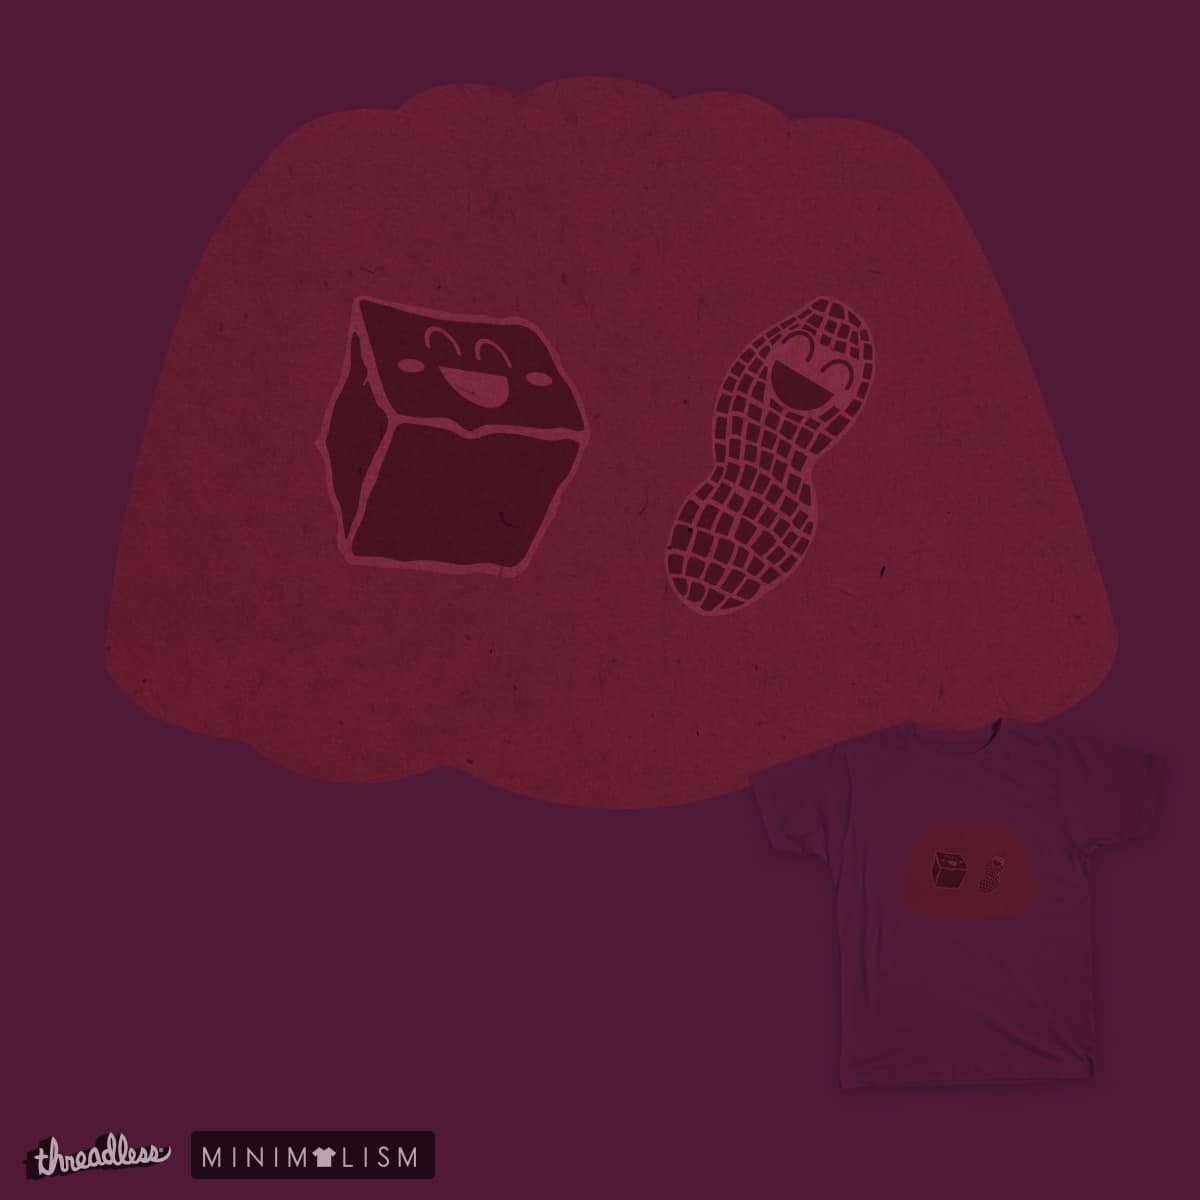 Peanut Butter Jelly by Pancake_Panda on Threadless